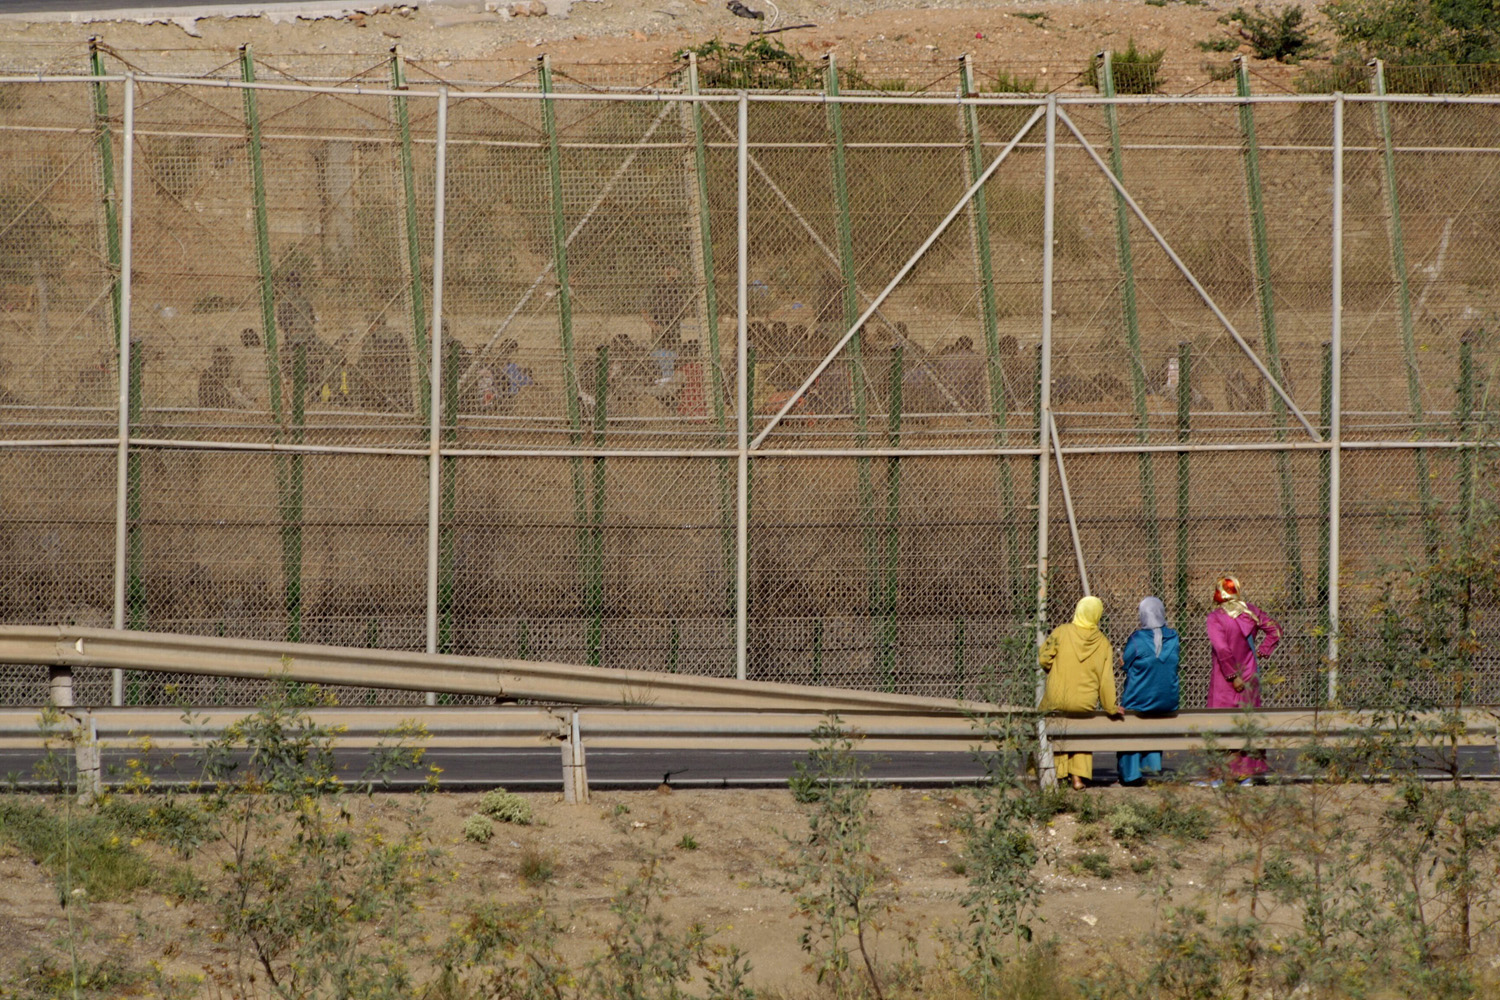 Jul. 23, 2014. Three women look at a group of Subsaharian immigrants who await on the other side of the fence bordering the Spanish city of Melilla with Morocco, in the Spanish enclave of Melilla, northern Africa